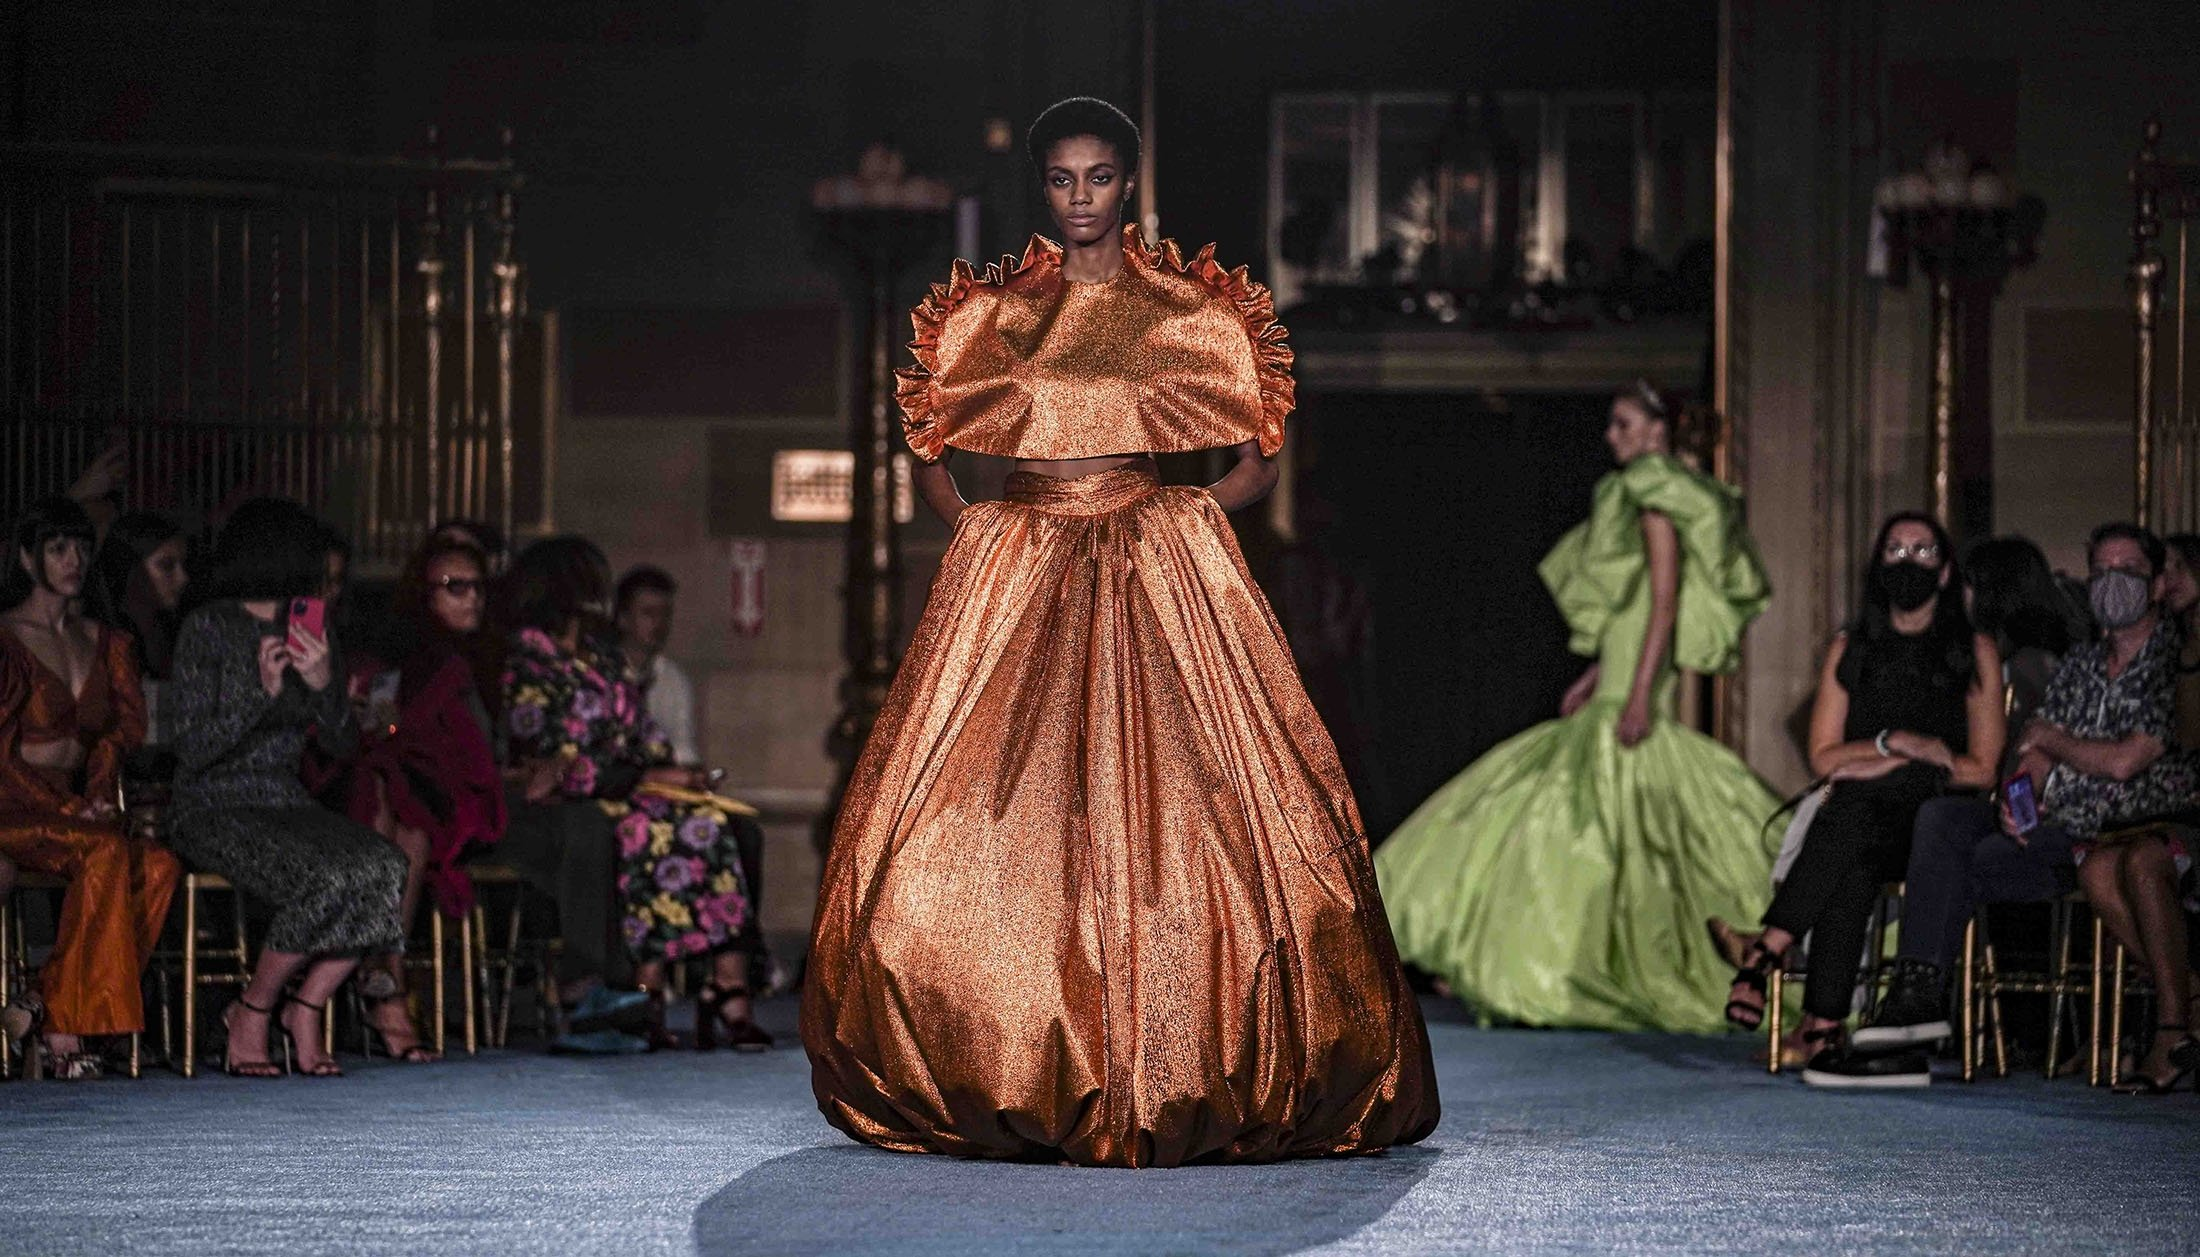 The latest fashion from Christian Siriano is modeled during New York Fashion Week, New York, U.S., Sept. 7, 2021. (AP Photo)